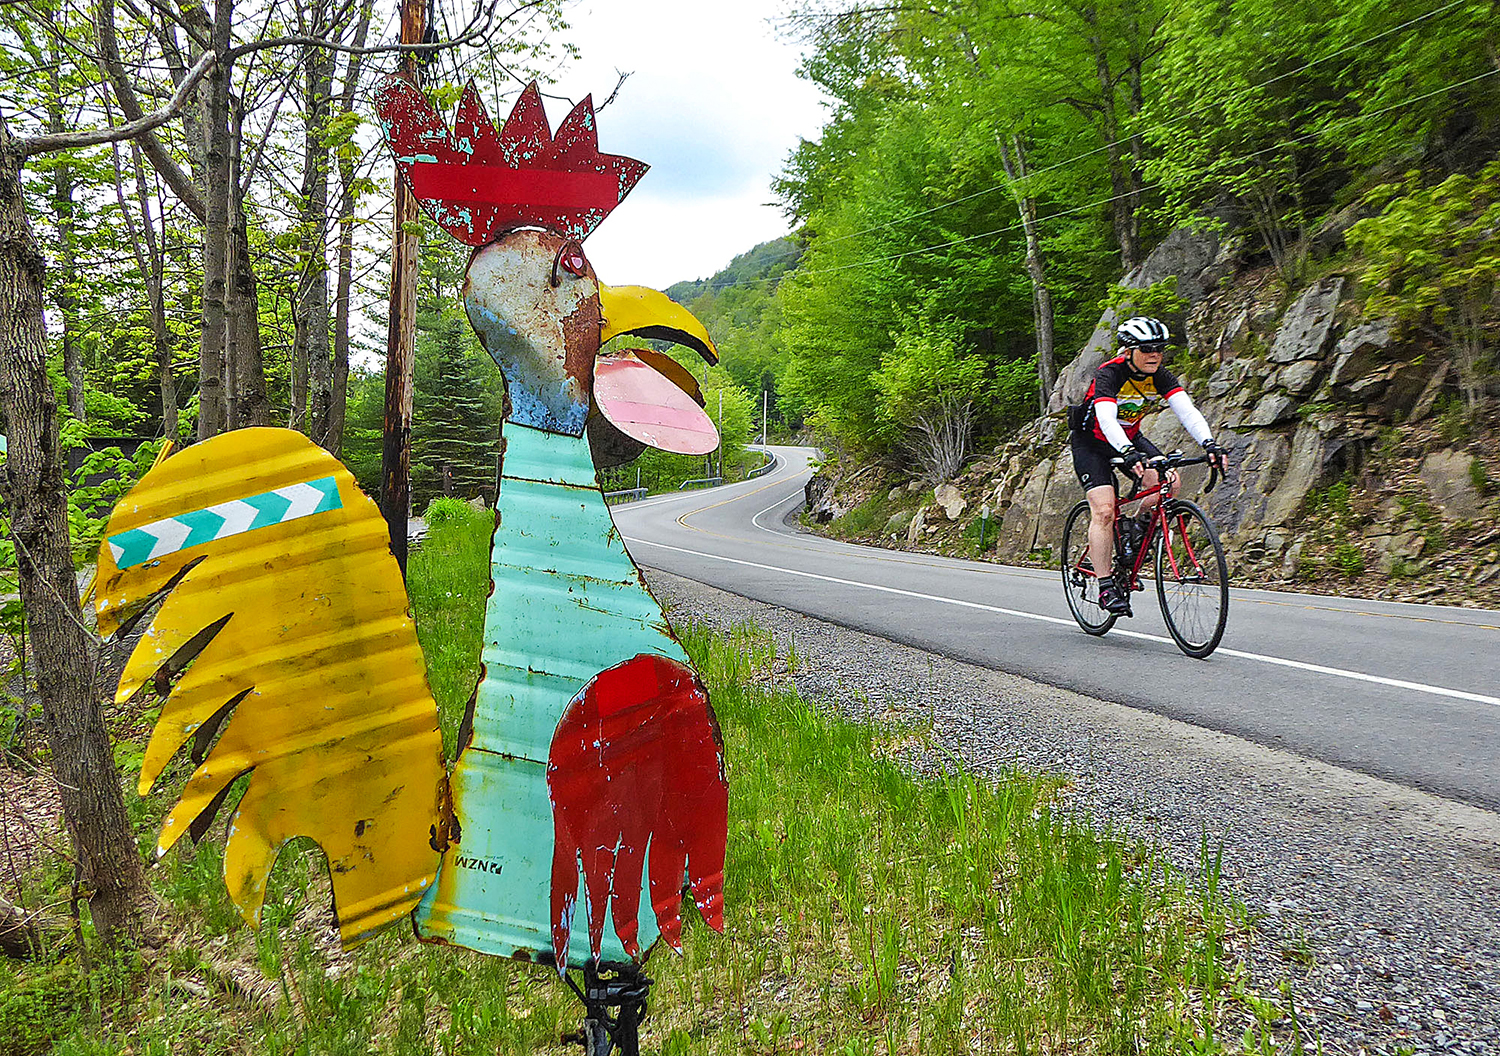 Roadside sculpture along Route 28 north of Old Forge, as Elayne Livote of Saratoga Springs passes by.  Dave Kraus/   KrausGrafik.com